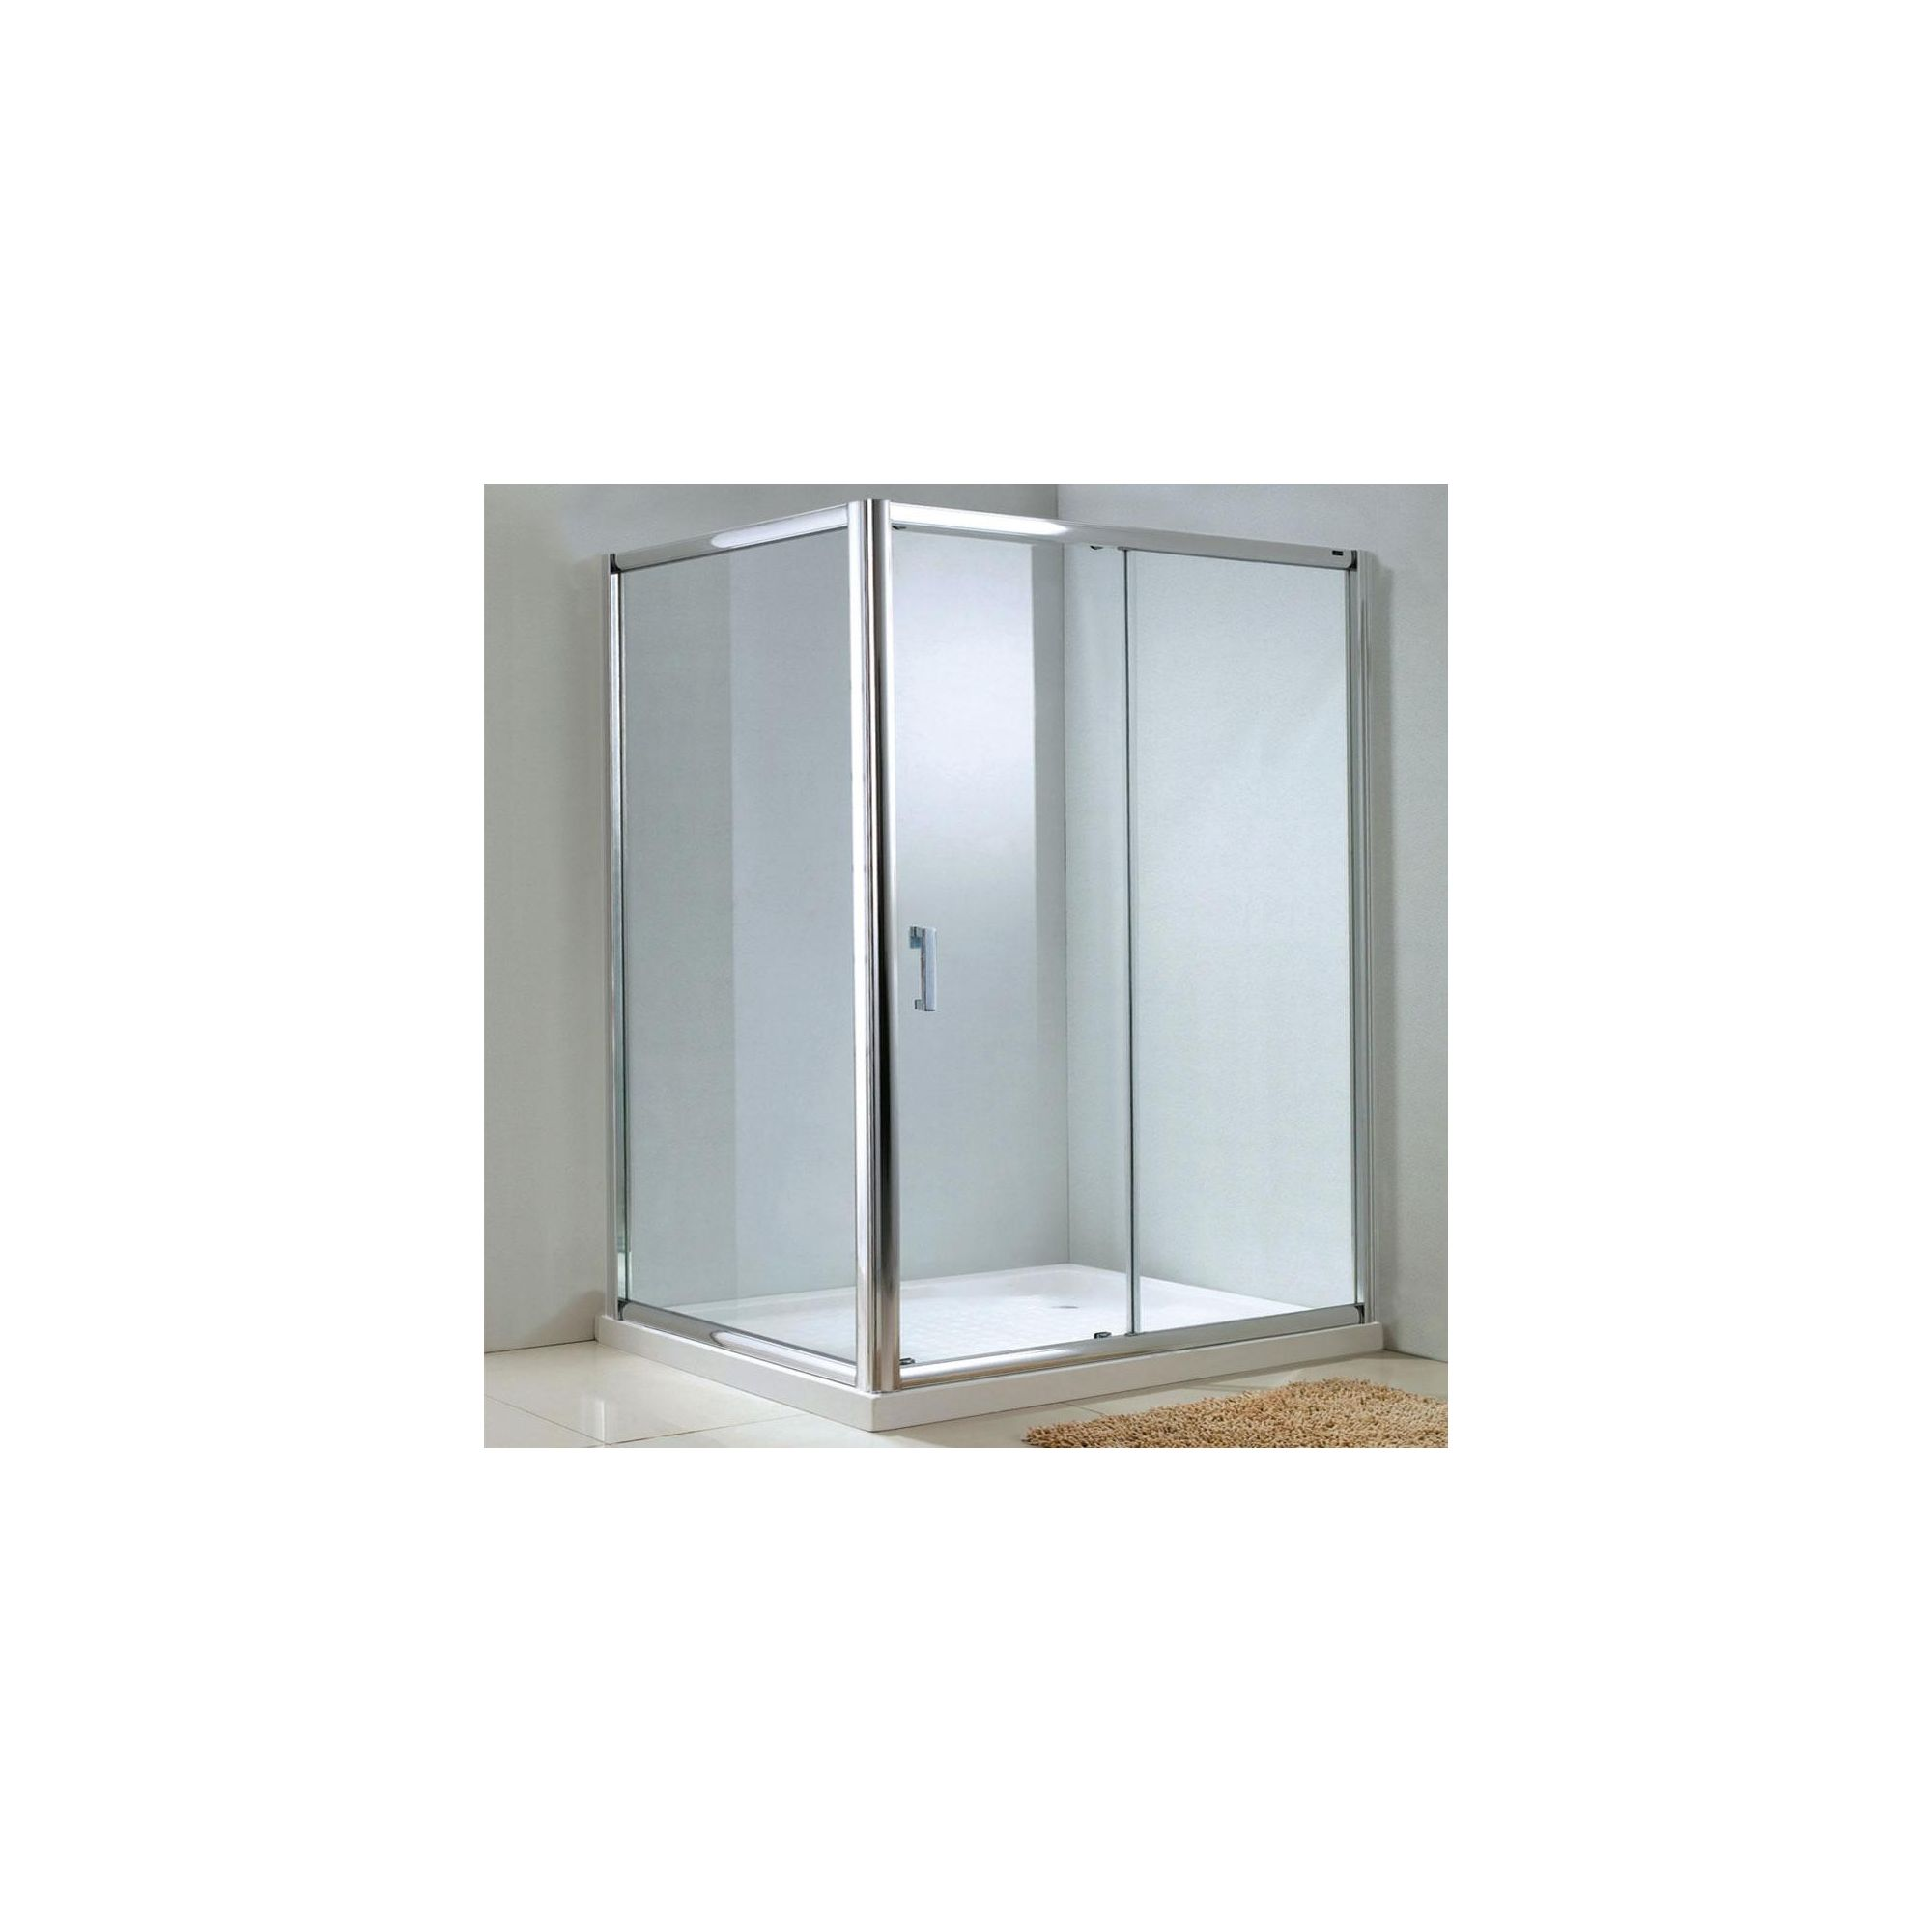 Duchy Style Single Sliding Door Shower Enclosure, 1100mm x 760mm, 6mm Glass, Low Profile Tray at Tescos Direct